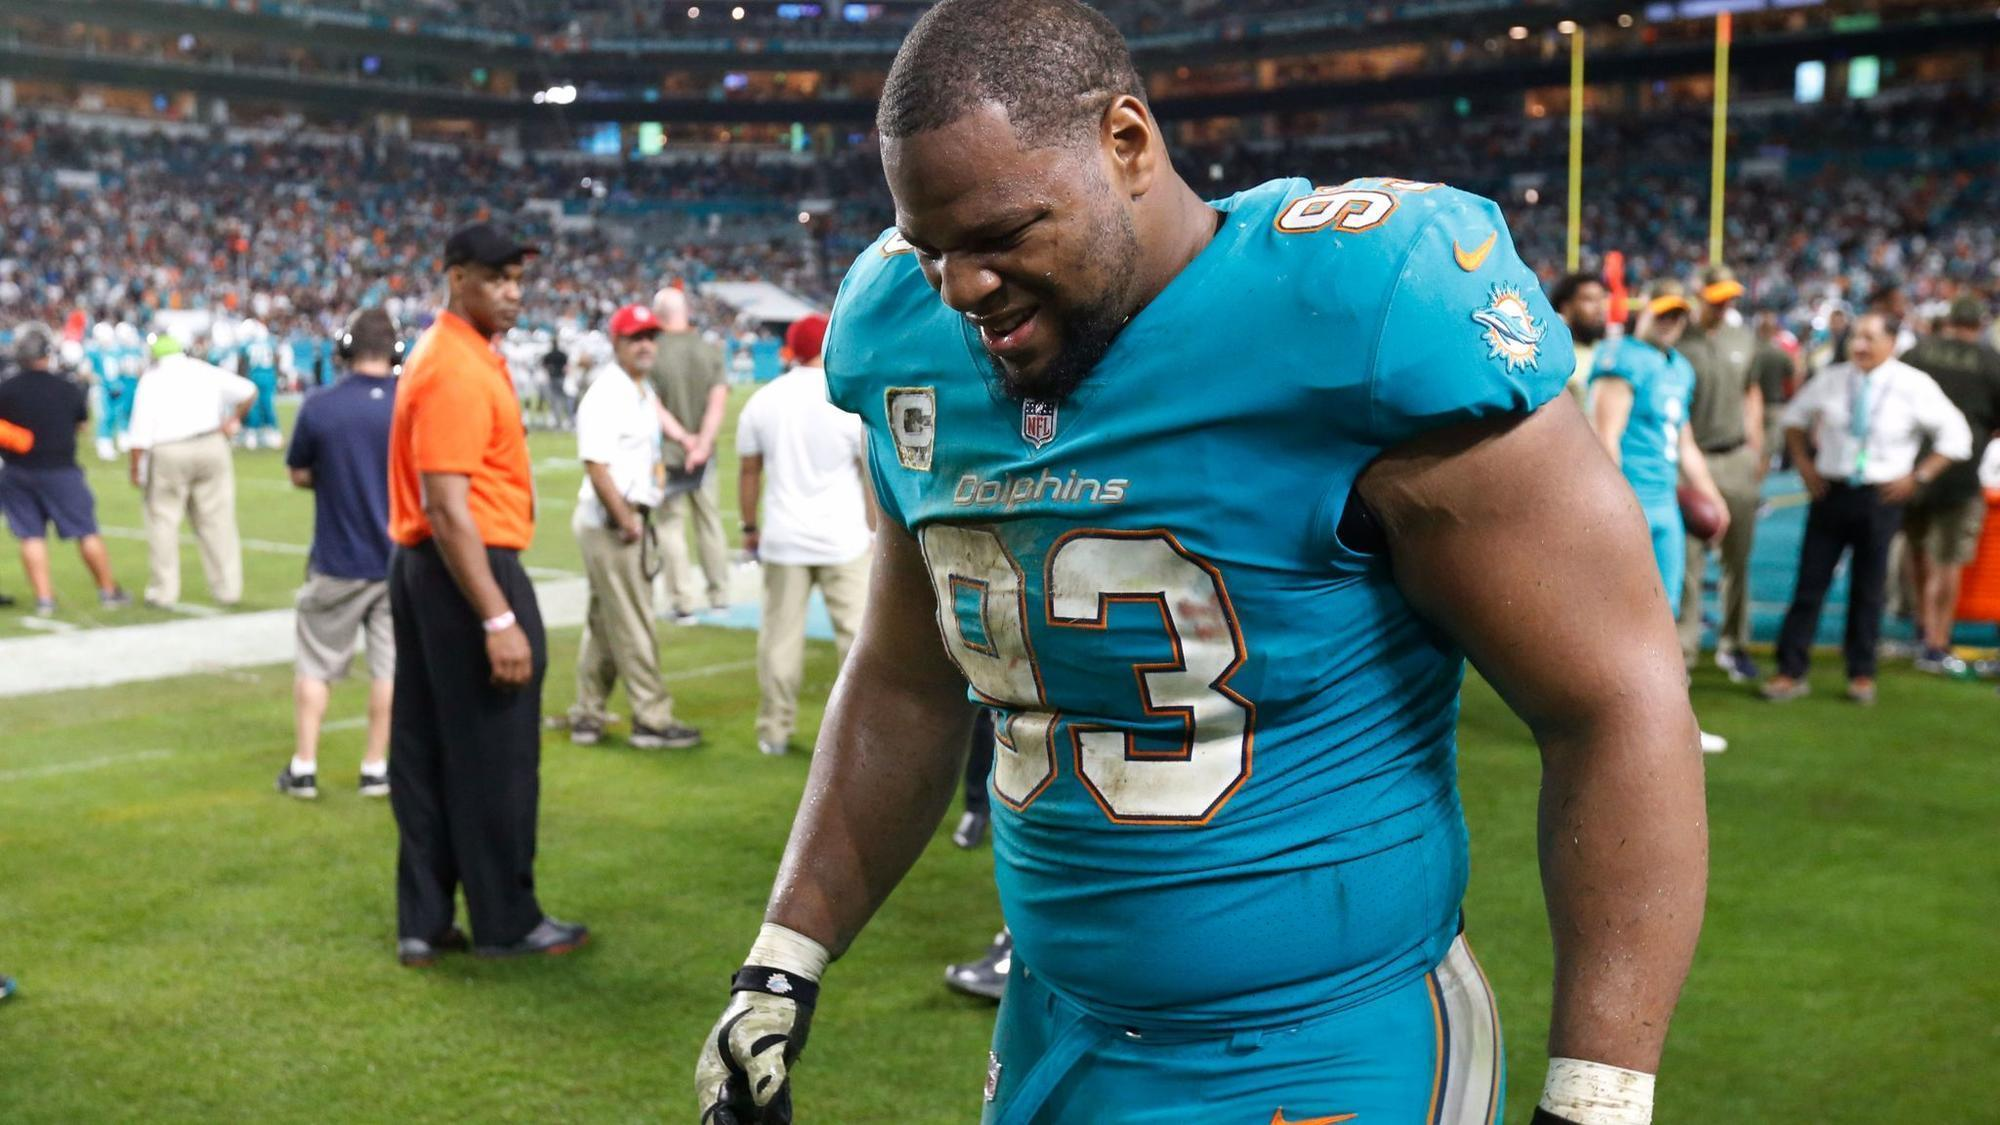 Dolphins Ndamukong Suh misses practice with knee injury Sun